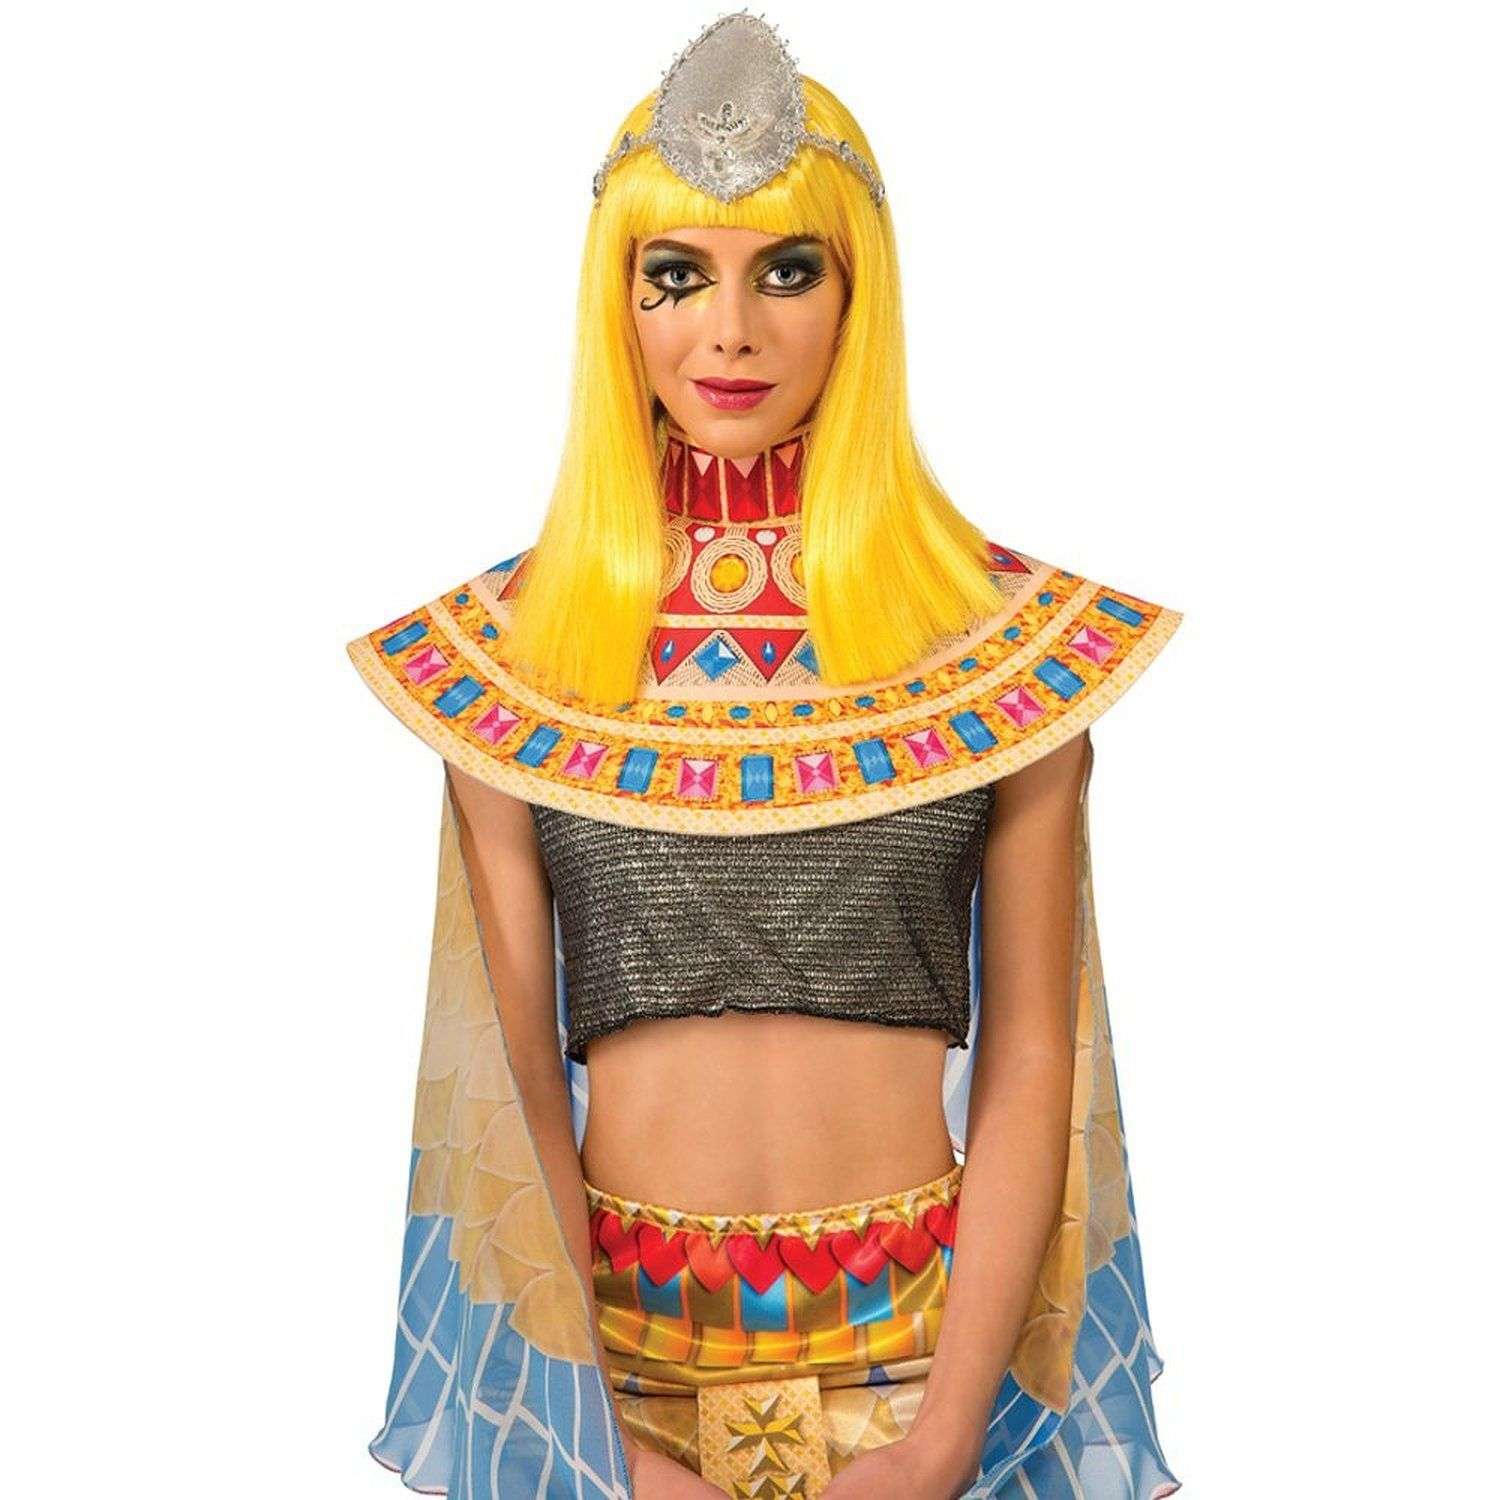 Image 1 of Rubie's Costume Katy Perry Patra Dark Horse Adult Wig, Yellow, One Size